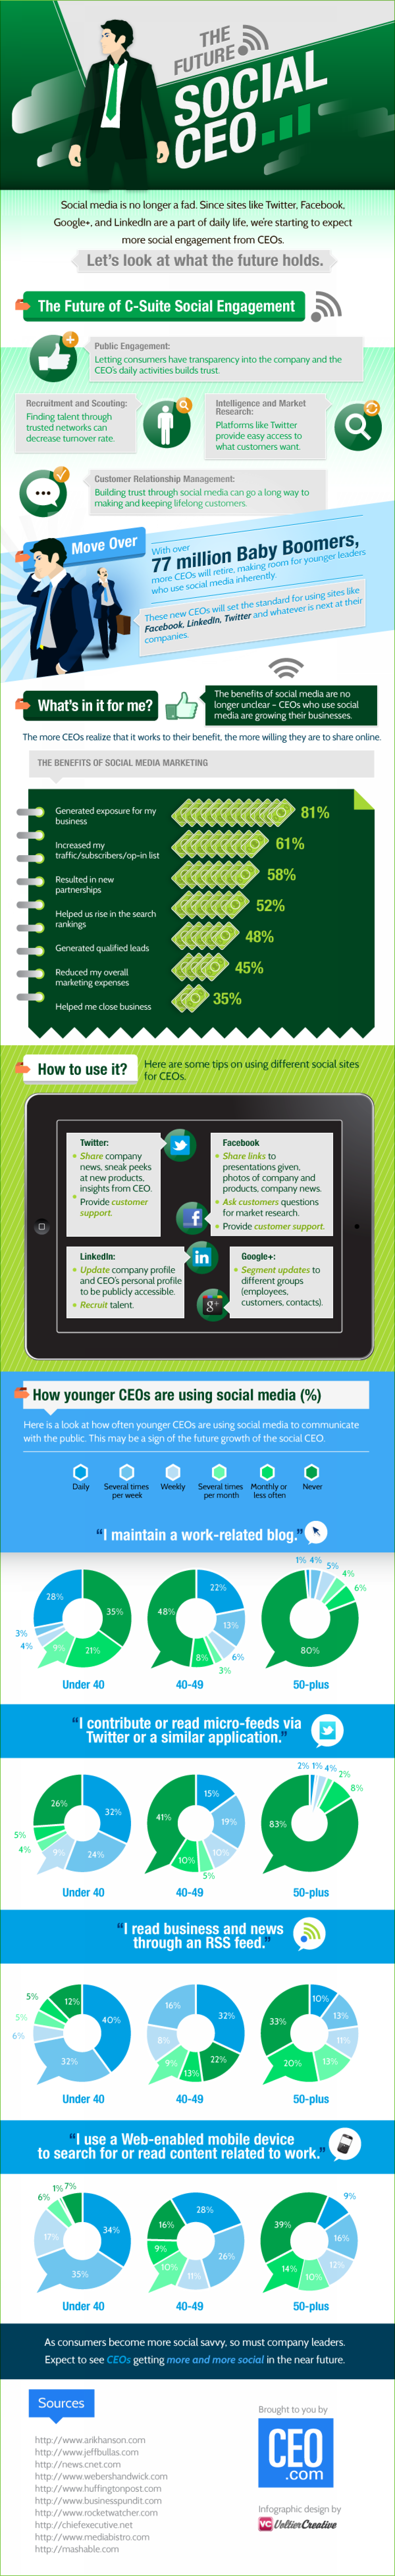 Twitter, Facebook, LinkedIn And The Social CEO Infographic